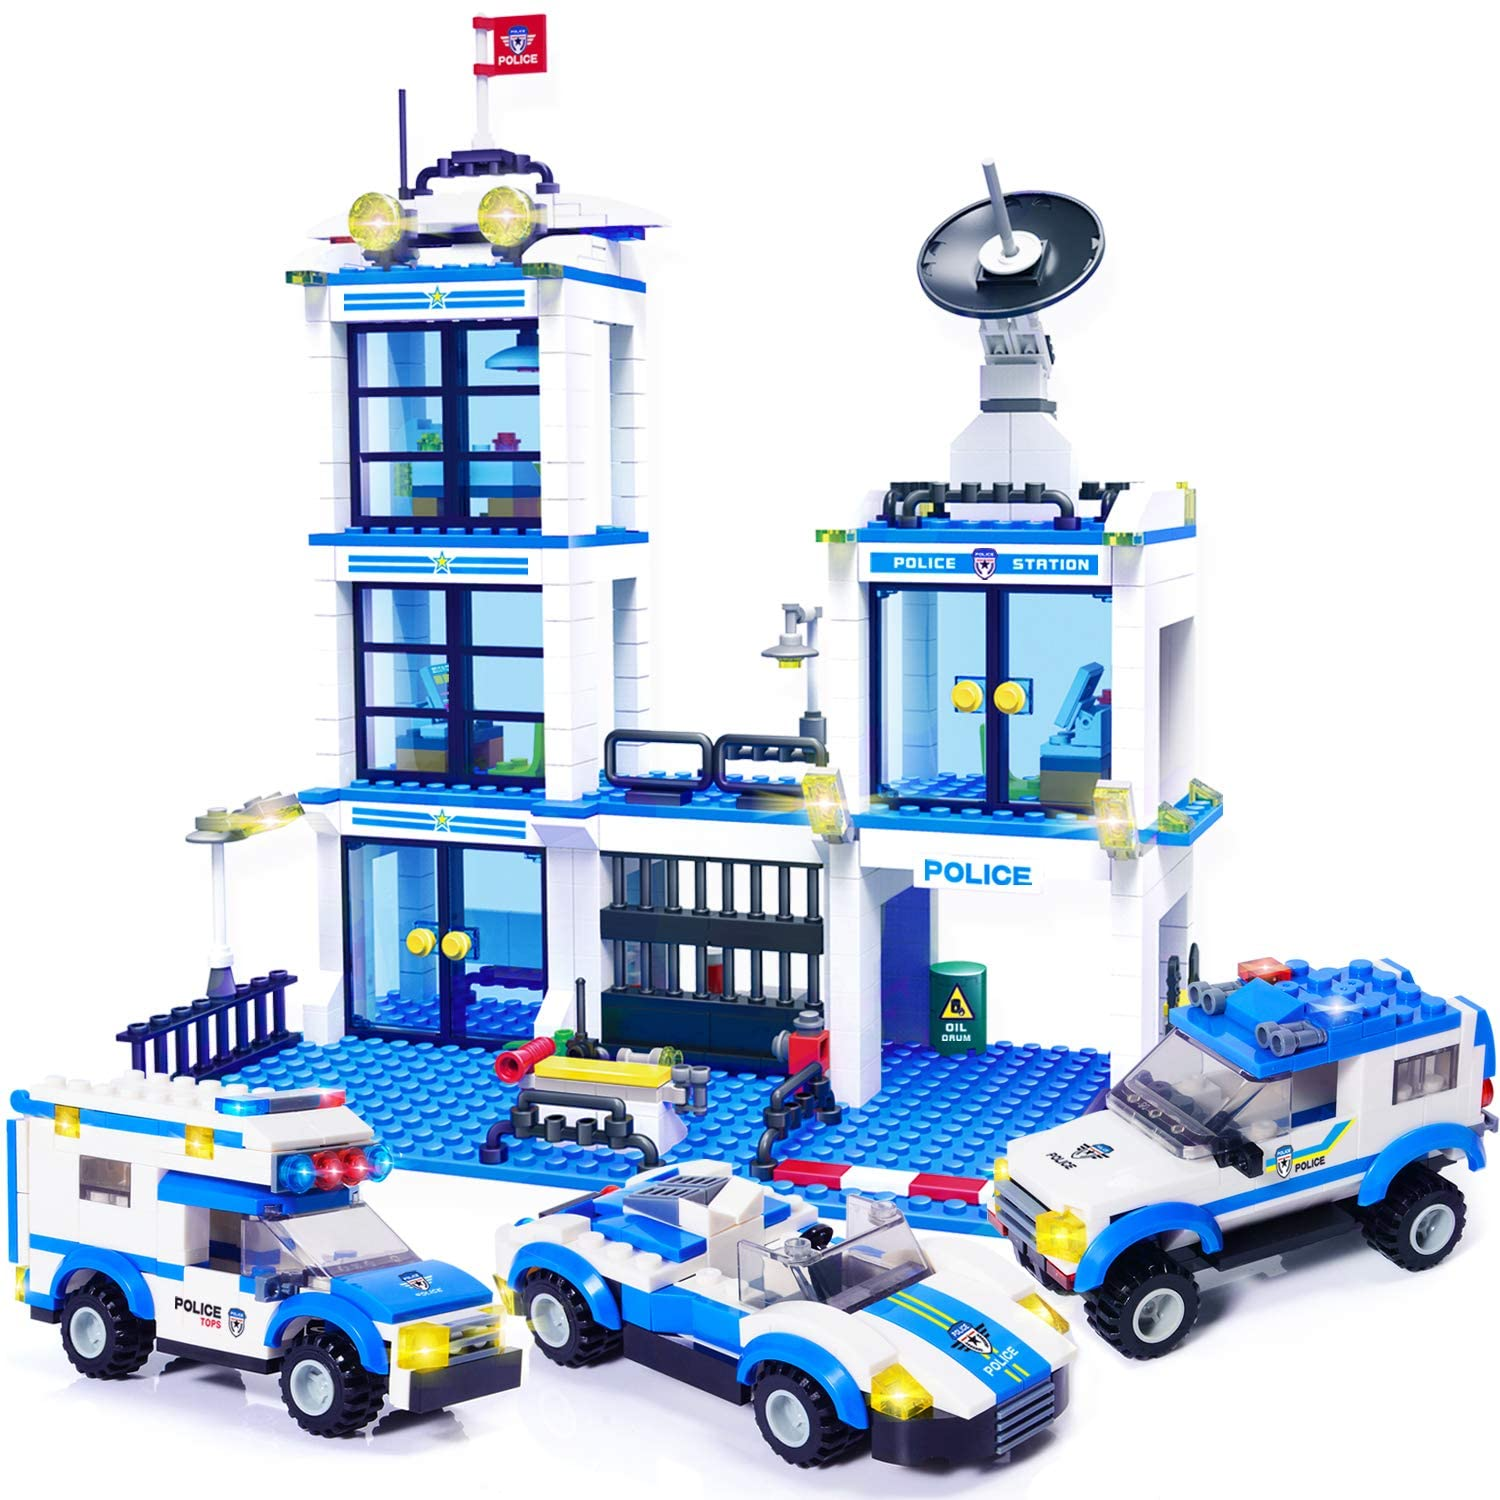 Amazon Com Wishalife 818 Pieces City Police Station Building Kit Police Car Toy City Sets Police Sets With Cop Car Patrol Vehicles For Boys And Girls 6 12 Toys Games